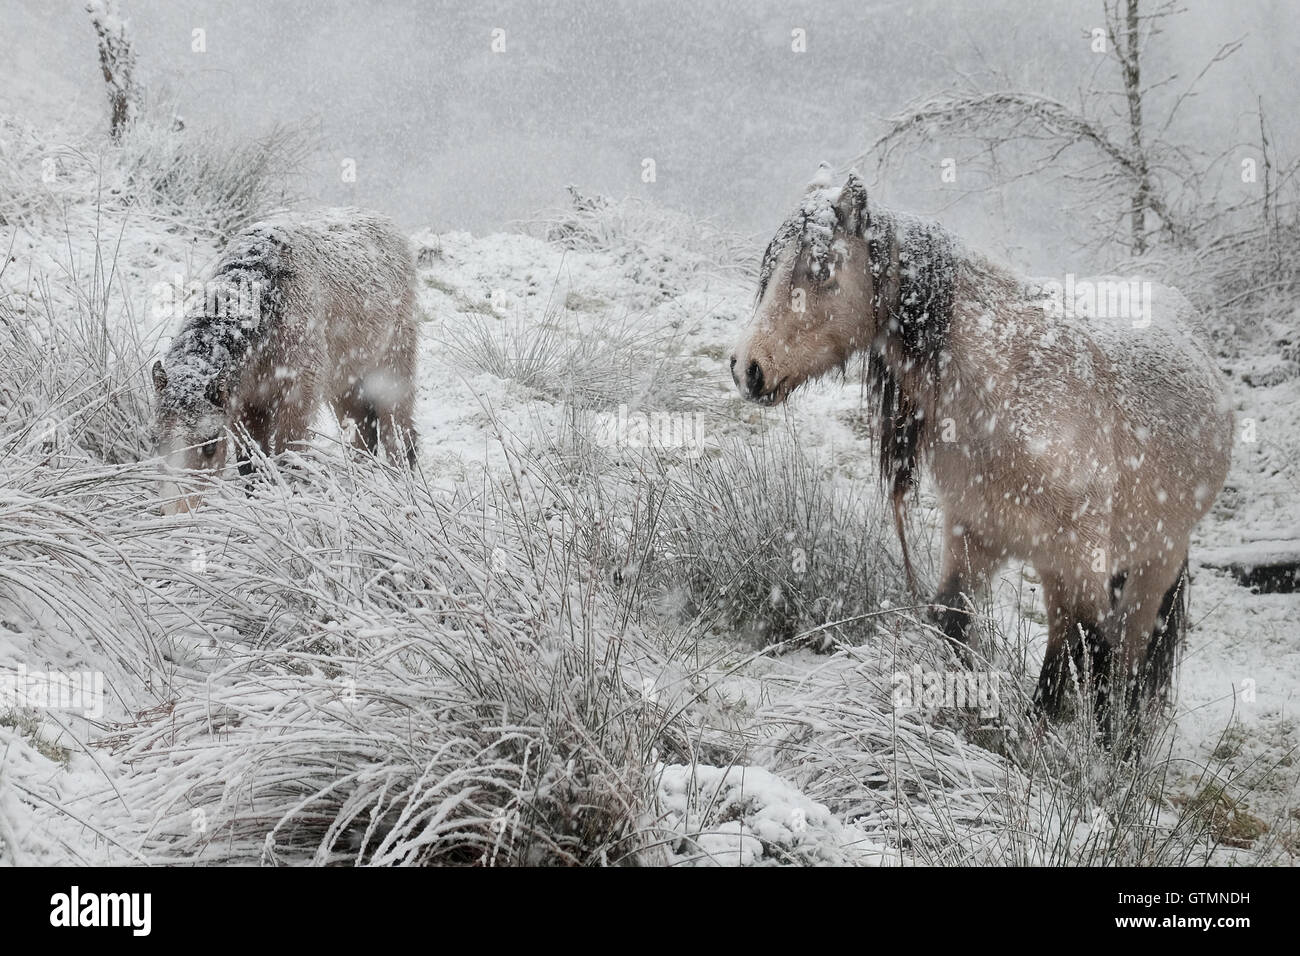 Welsh cobs forage for food in a blizzard - Stock Image